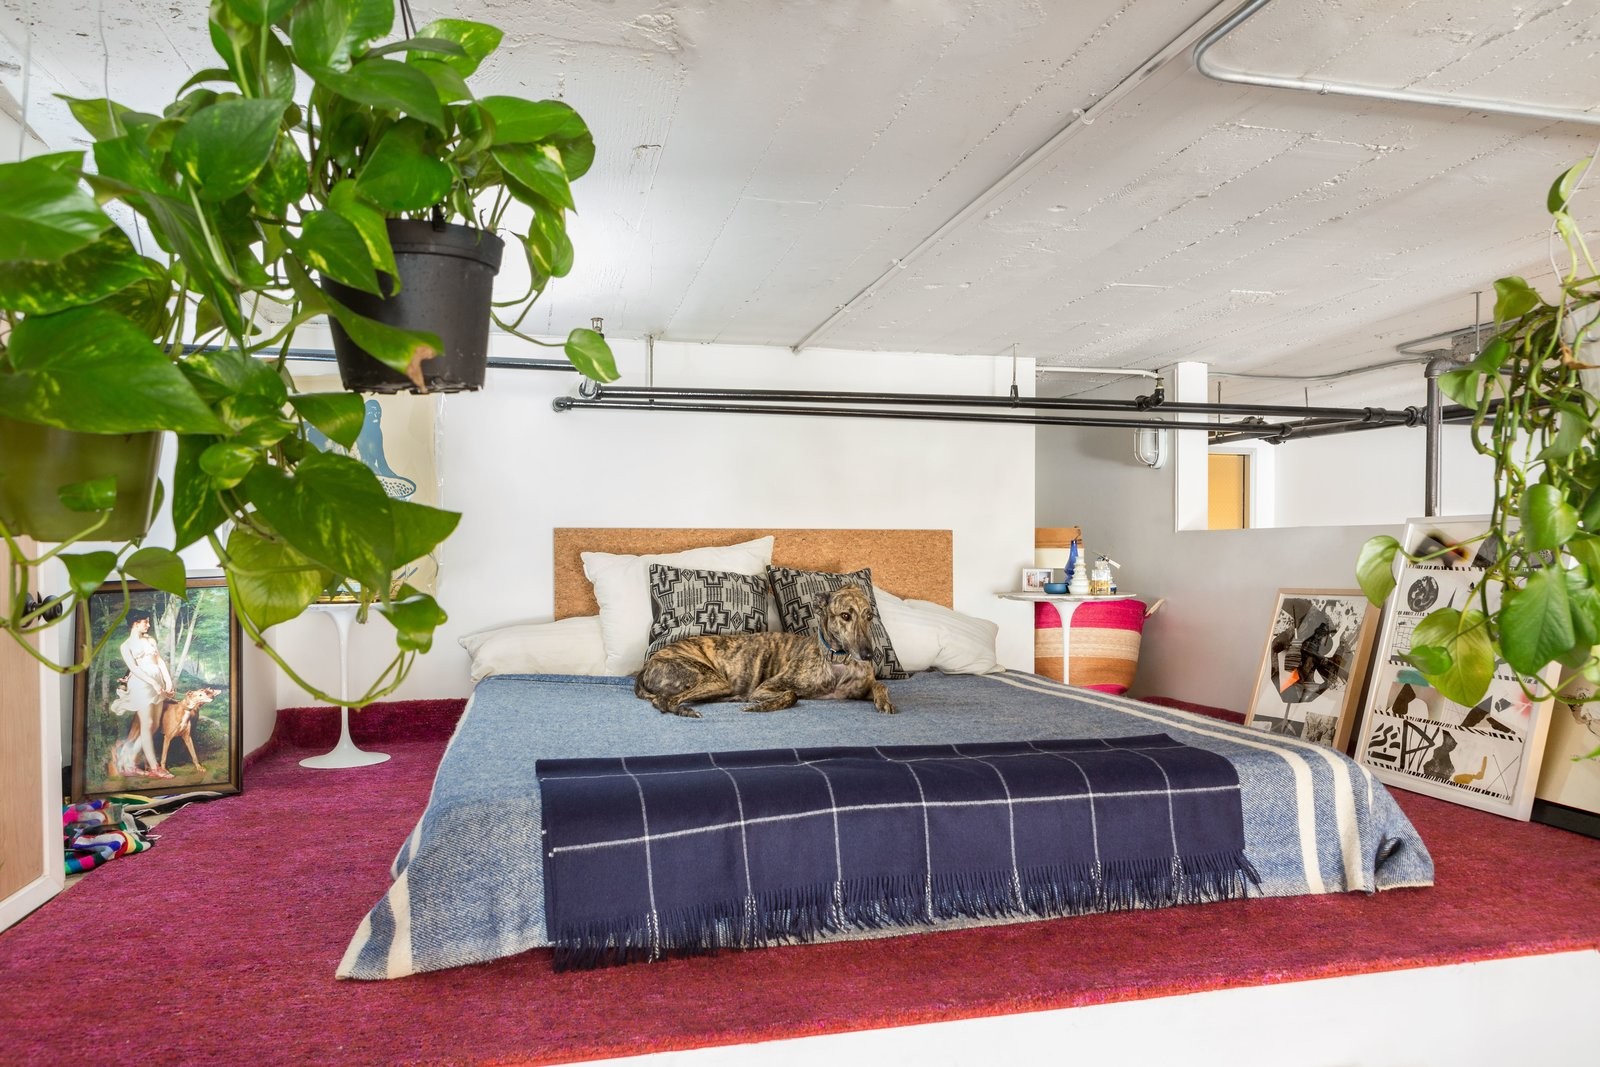 Bedroom, Rug Floor, Bed, Wall Lighting, and Night Stands The bed occupies a cozy alcove.  Best Photos from Budget Breakdown: A Bay Area Warehouse Becomes a Live/Work Space For $124K